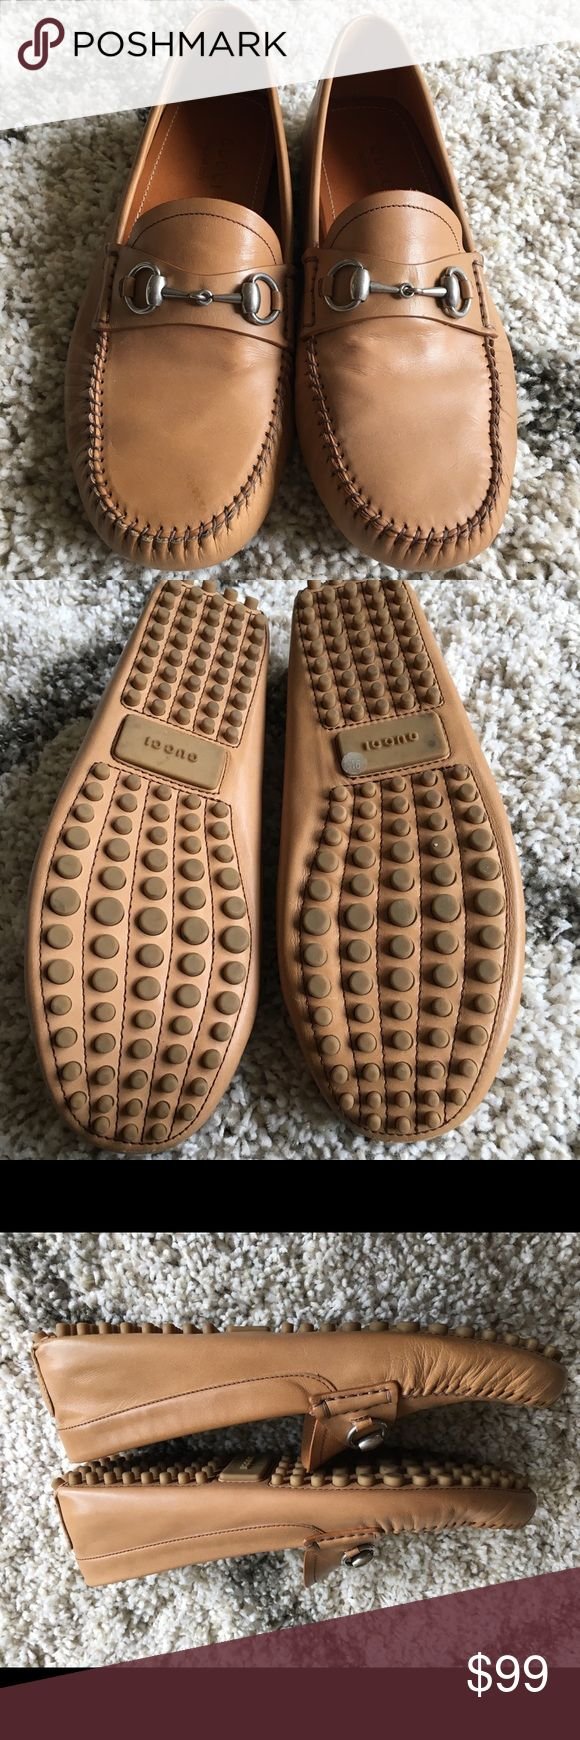 Gucci Men's Tan Loafer Size 9.5 - Great Condition Men's 9.5 G Gucci loafer. These have been lightly worn. Only worn out of the house once. These are very nice! Gucci Shoes Loafers & Slip-Ons